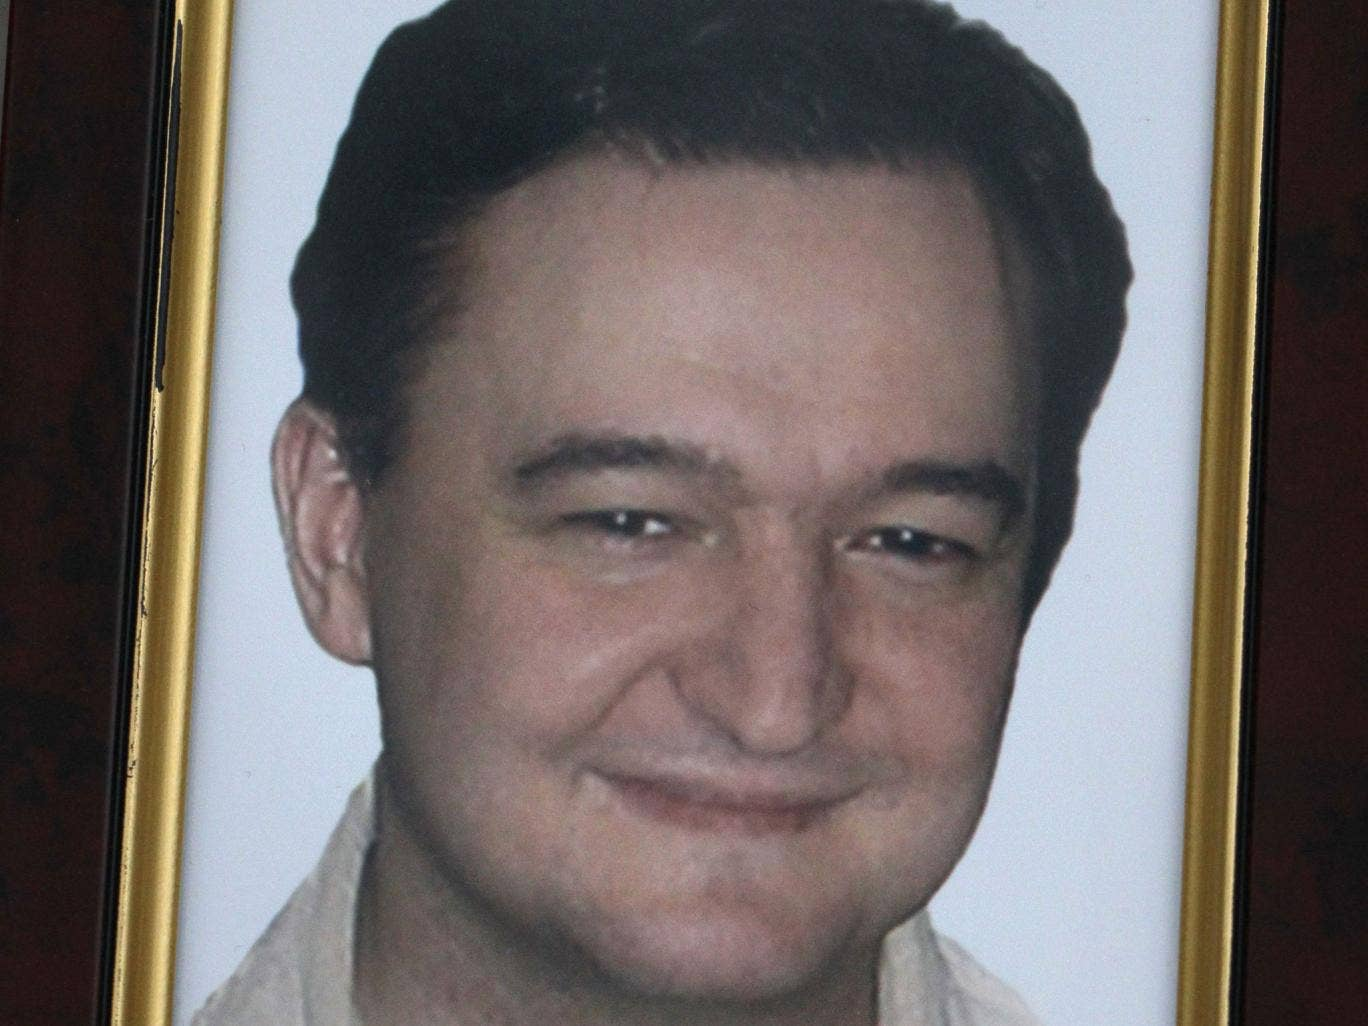 Sergei Magnitsky: The lawyer tasked with investigating the alleged fraud against Hermitage died in prison in 2009 after he was beaten and prison officials refused him treatment for a medical condition